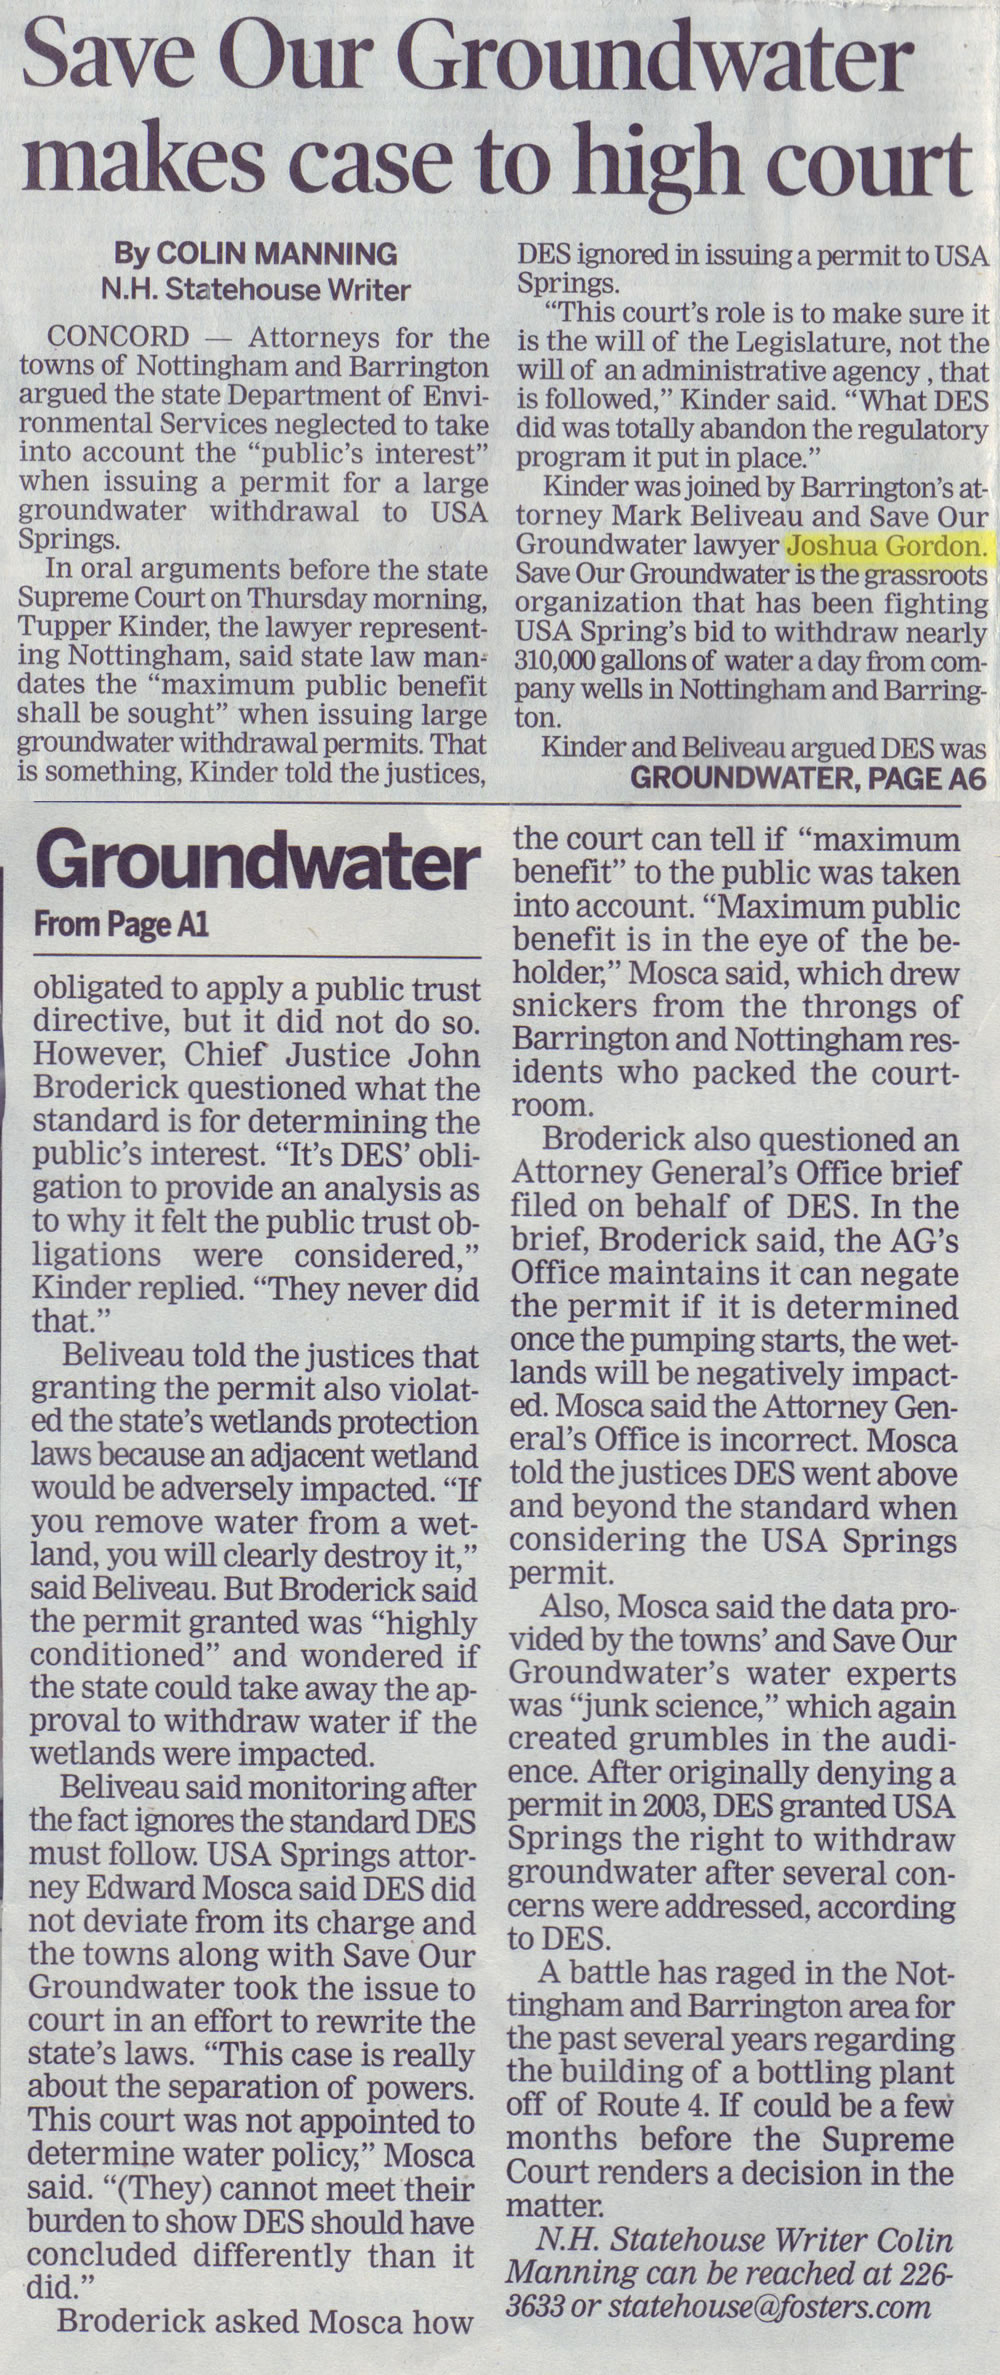 Save Our Groundwater